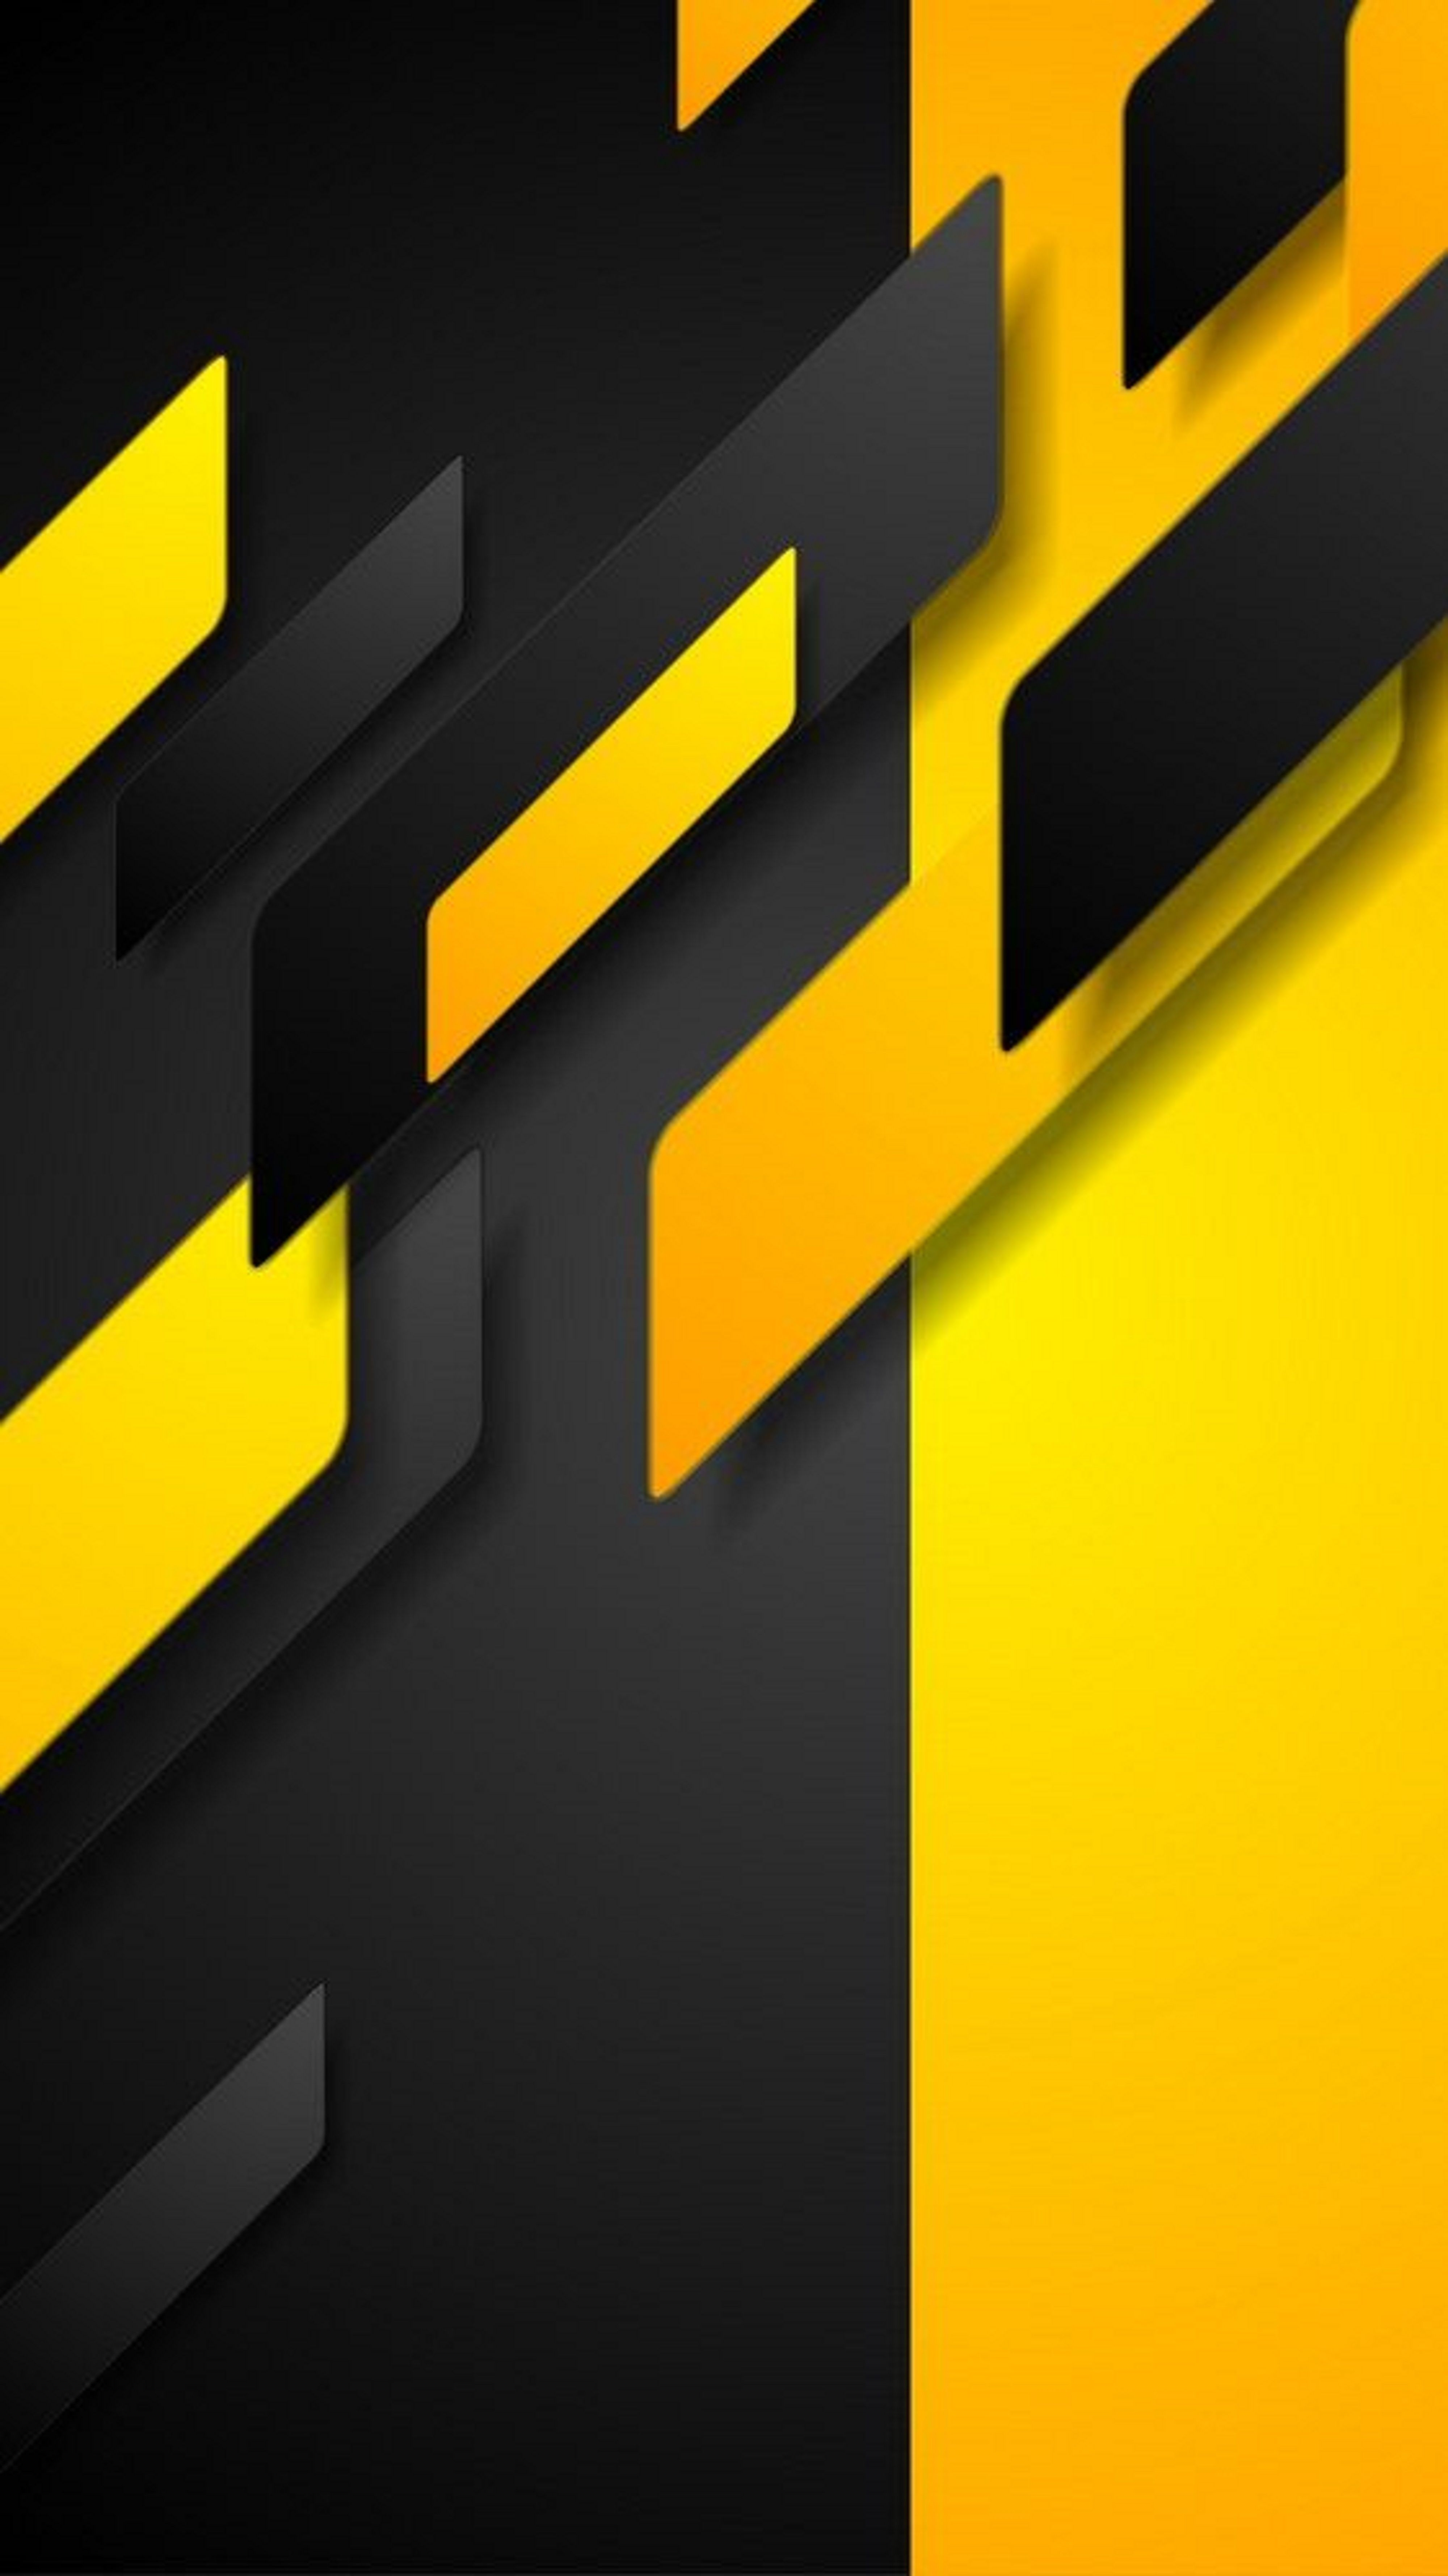 Abstract Design 7 Phone Wallpaper Design Abstract Wallpaper Backgrounds Graphic Wallpaper